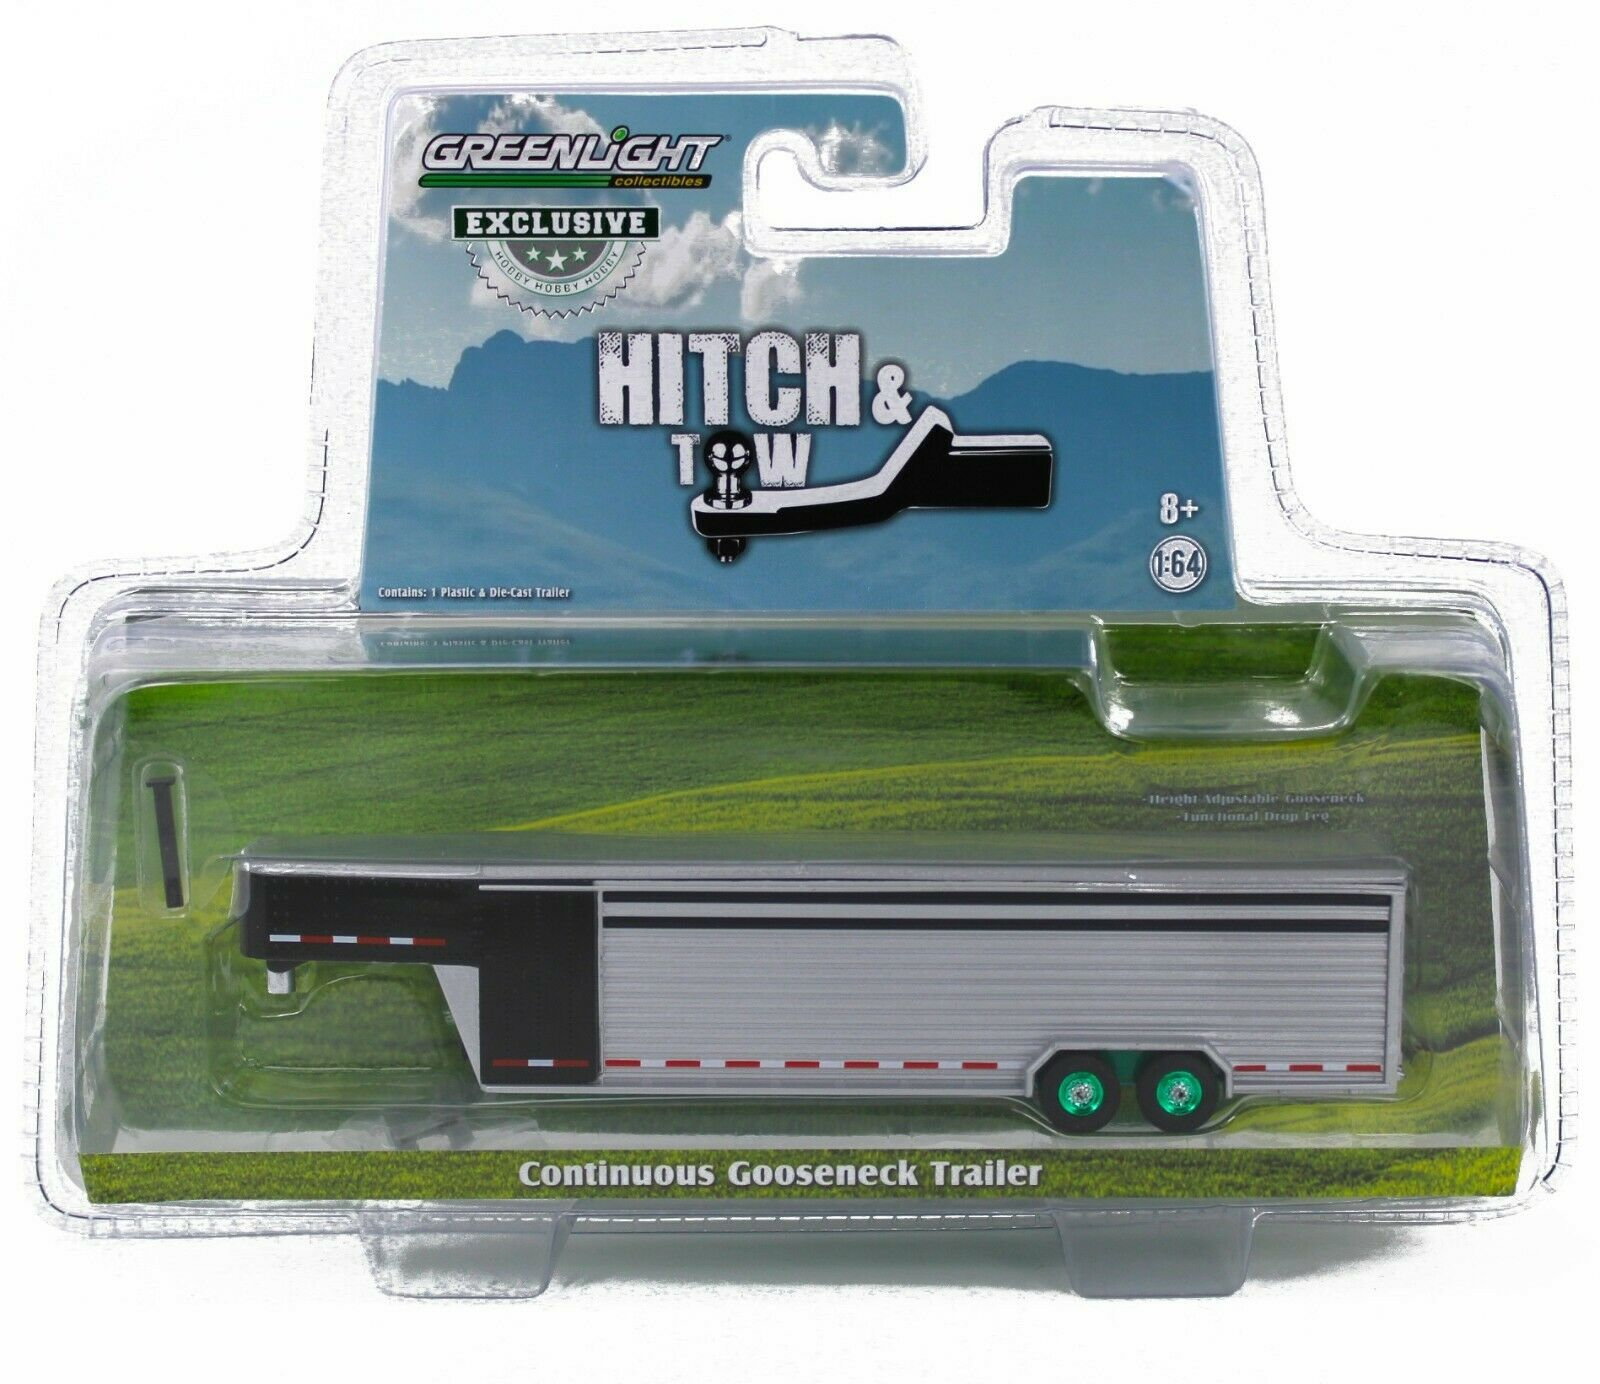 1:64 GreenLight BLACK & ALUMINUM* Solid Row Side LIVESTOCK TRAILER GREEN MACHINE